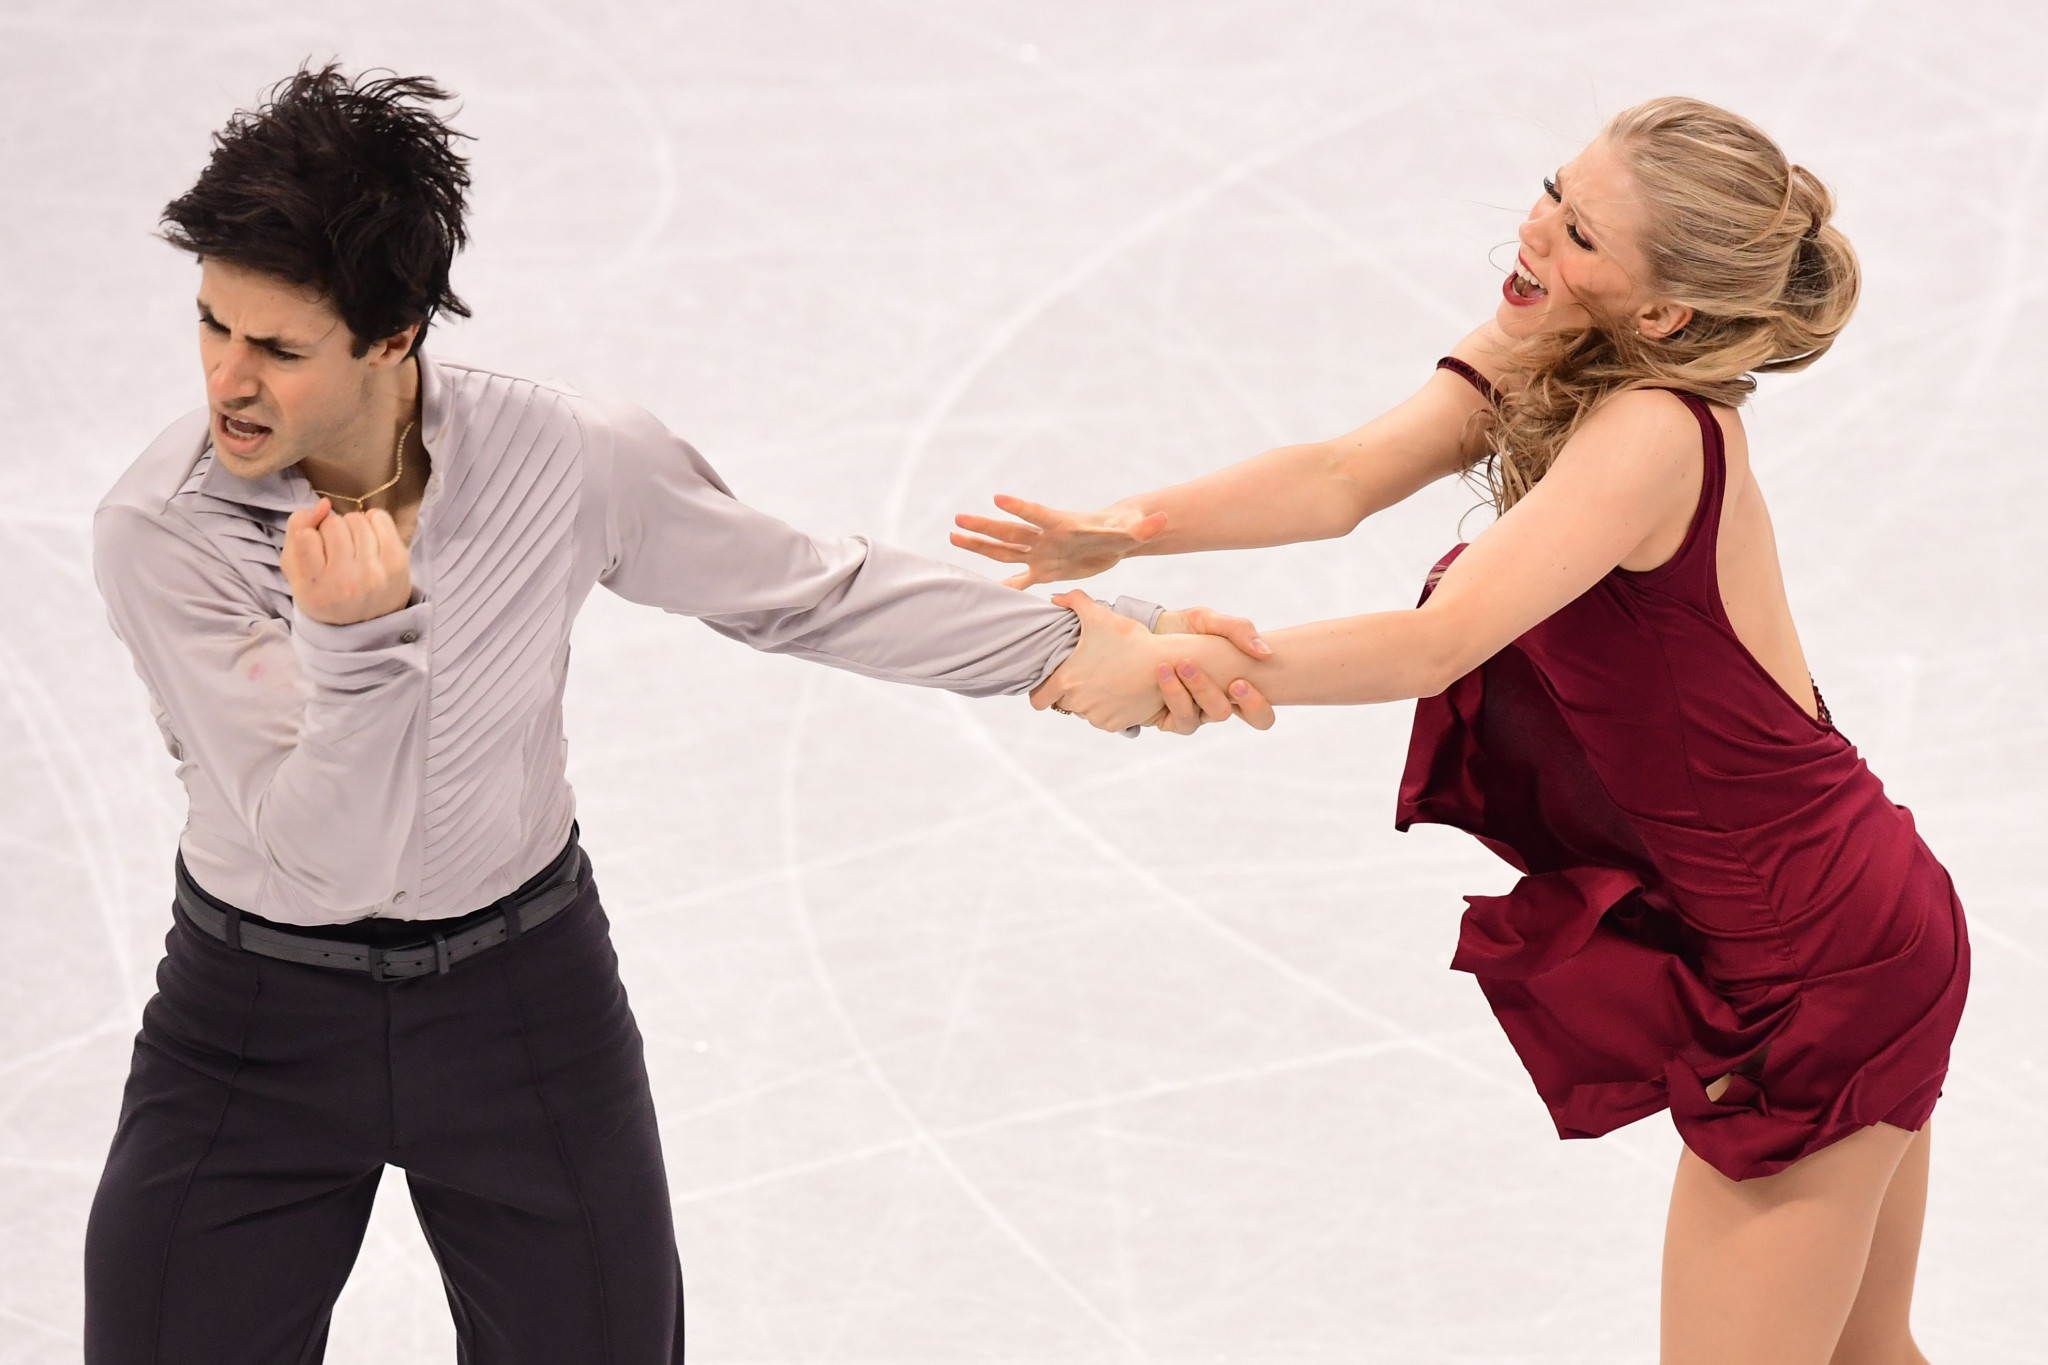 Kaitlyn Weaver and Andrew Poje have opted to evaluate their future plans ©Getty Images